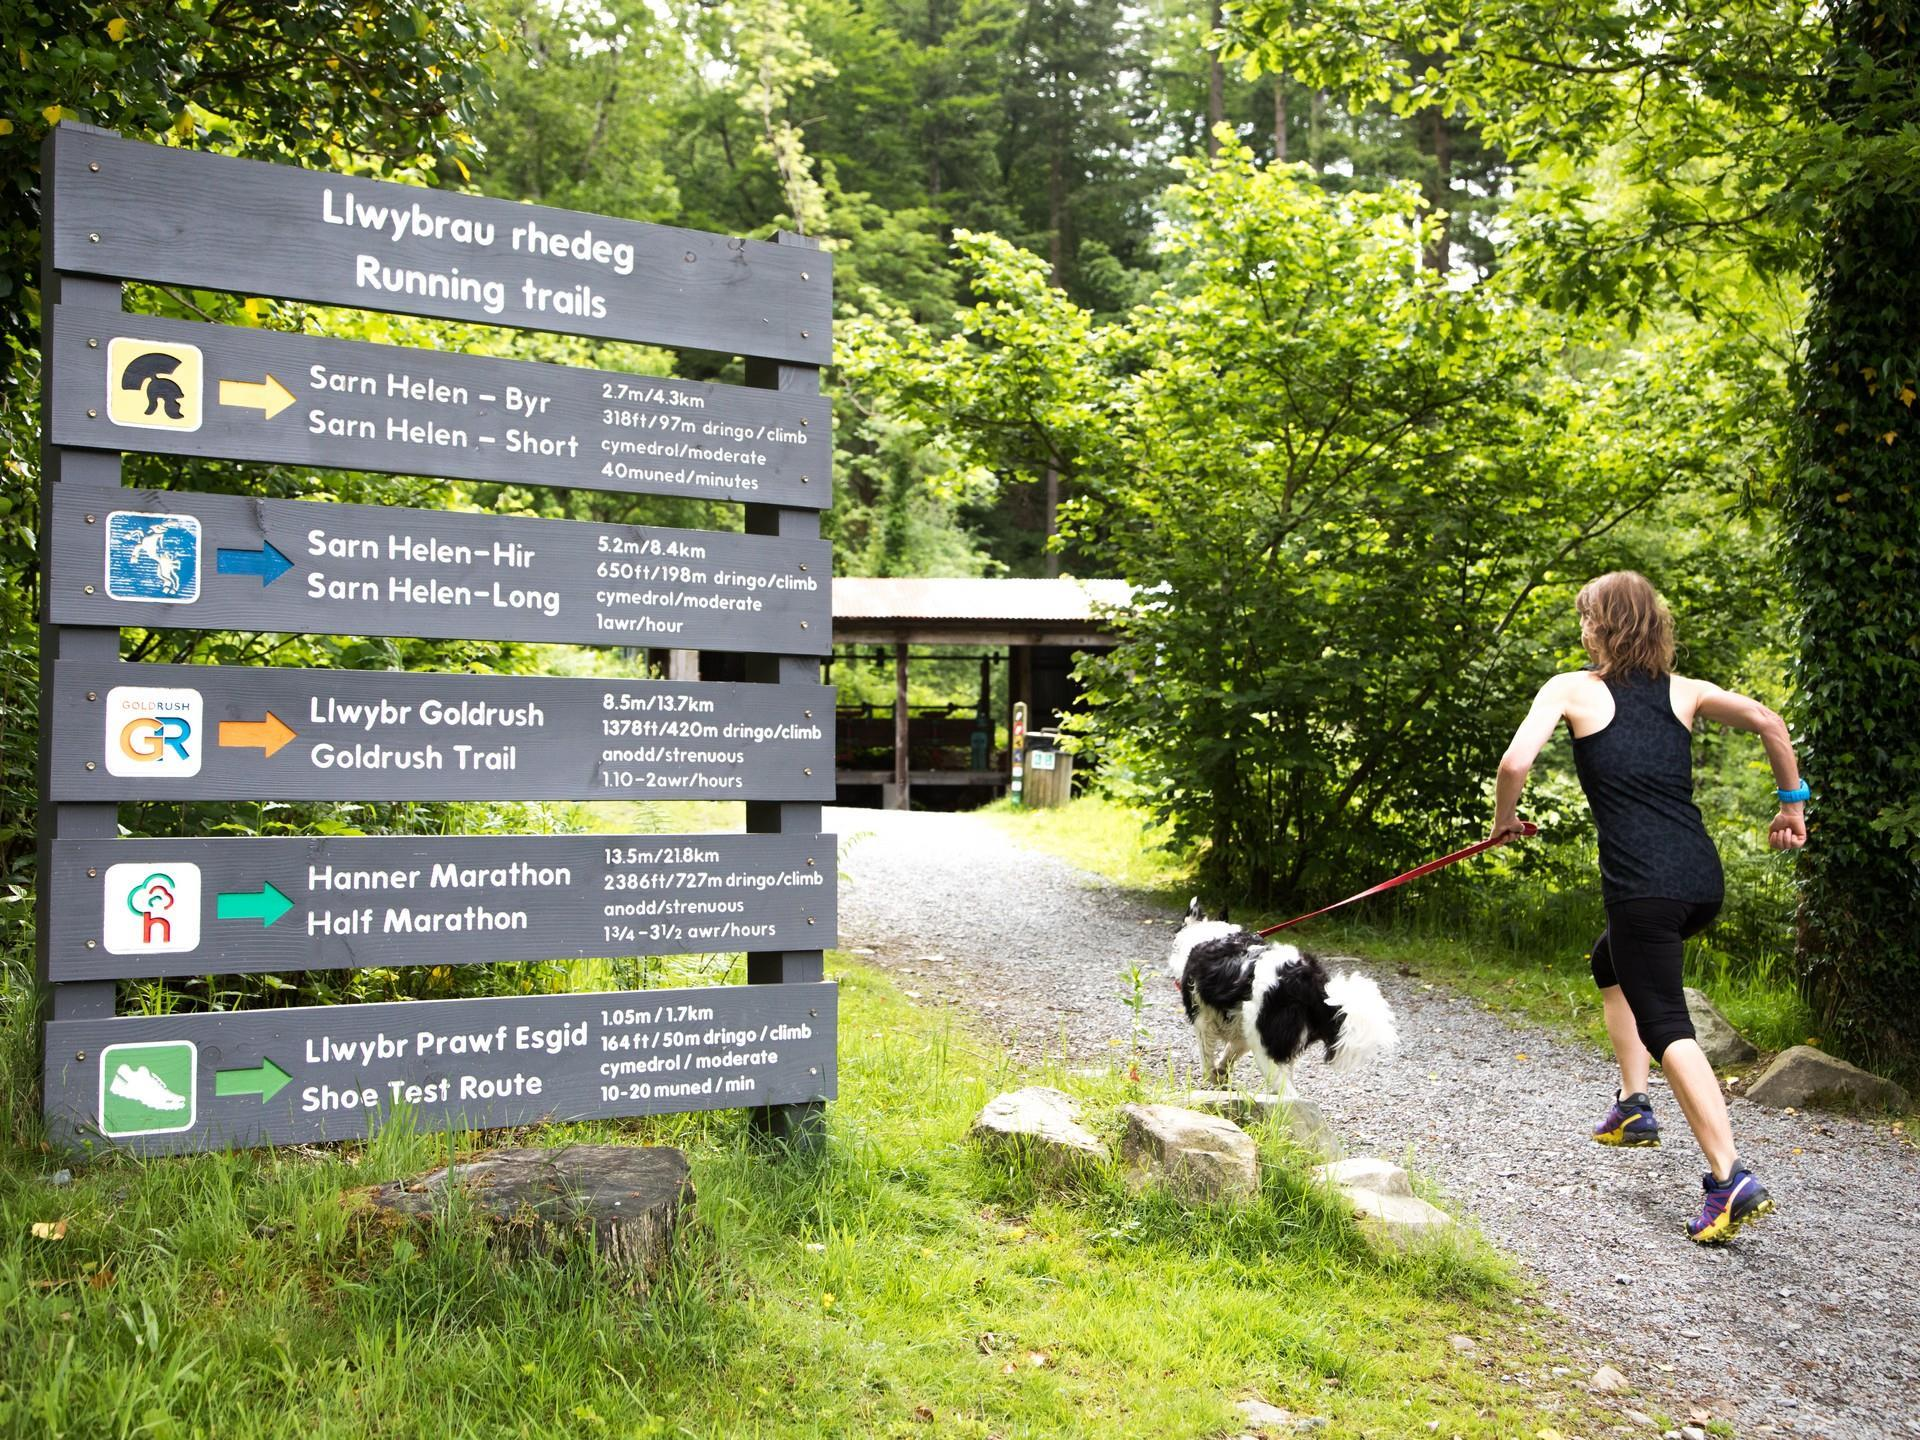 Running Trails at Coed Y Brenin